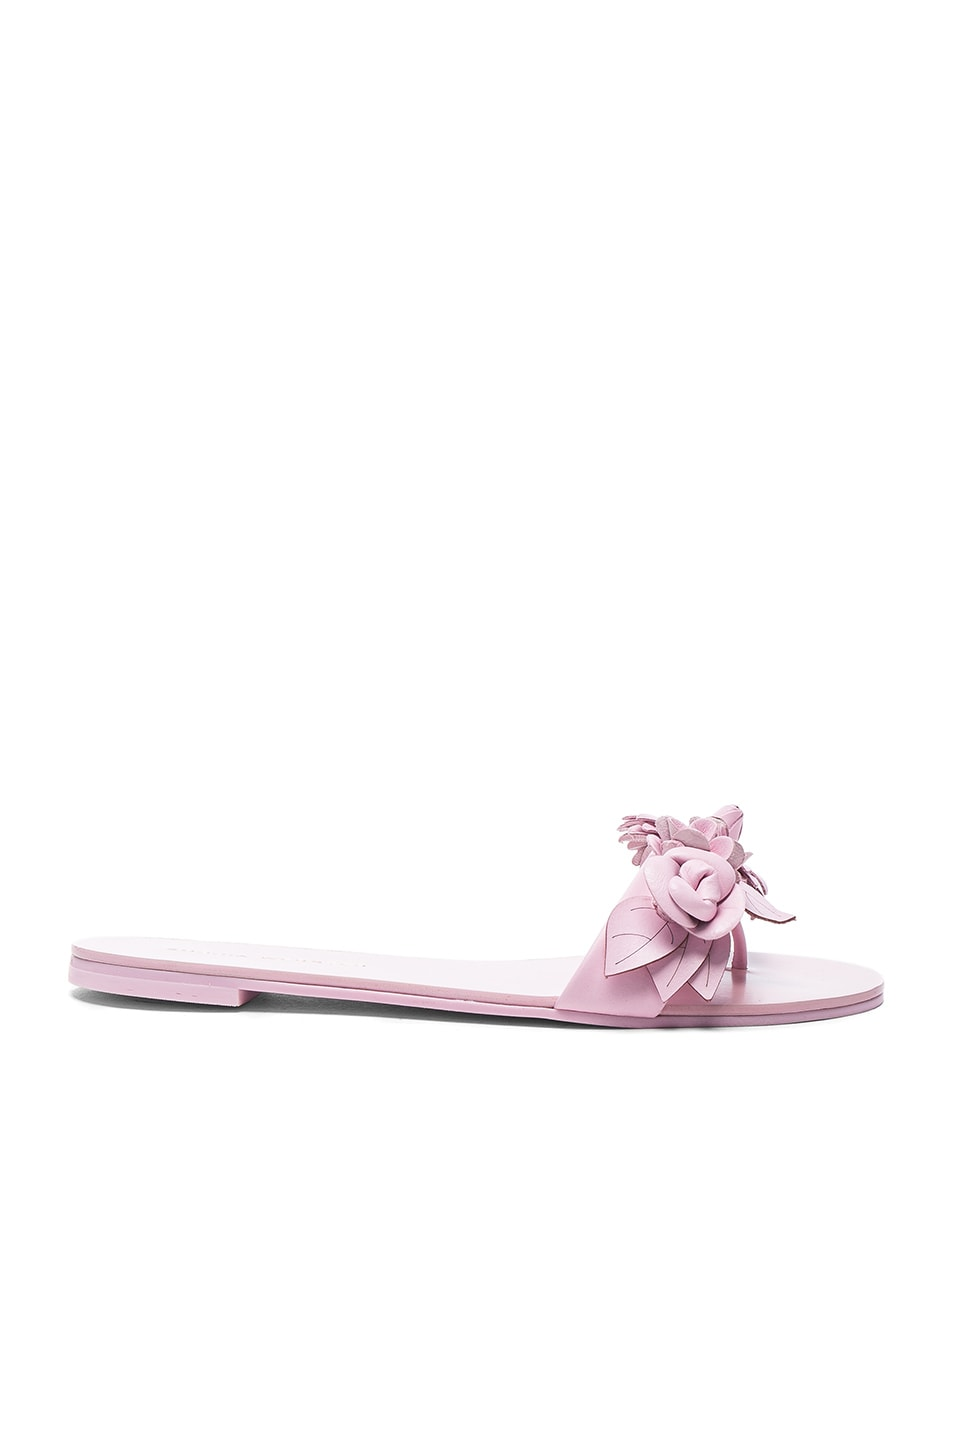 Image 1 of Sophia Webster Leather Lilico Sandals in Pink